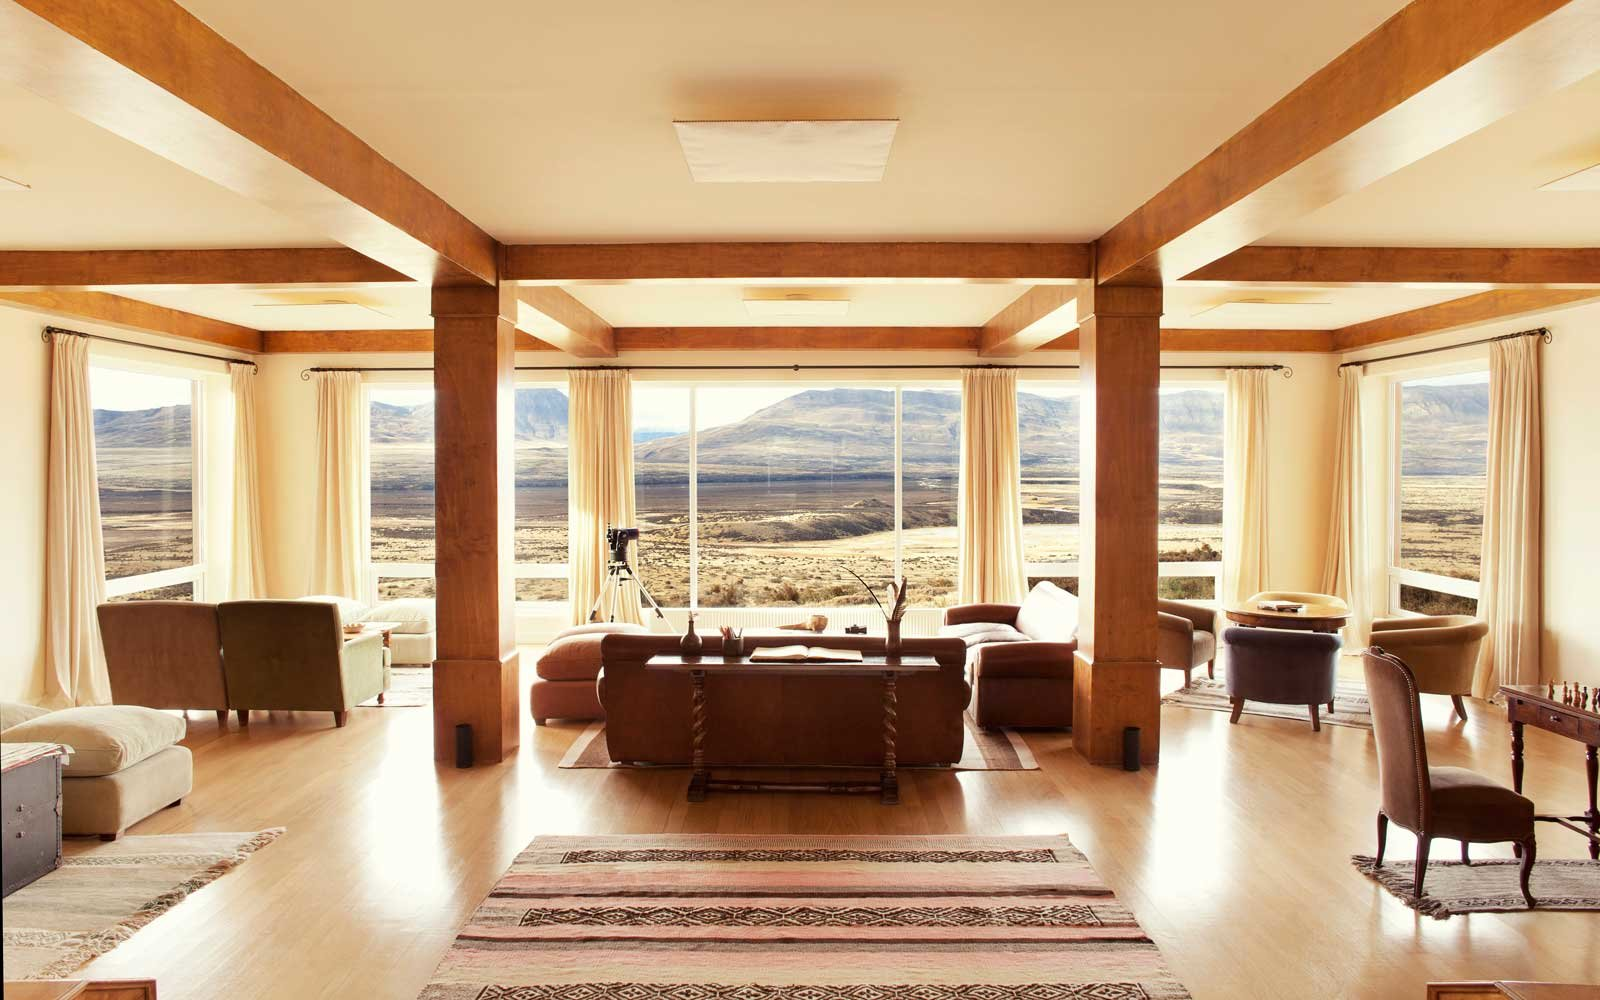 Living room with a view at EOLO resort